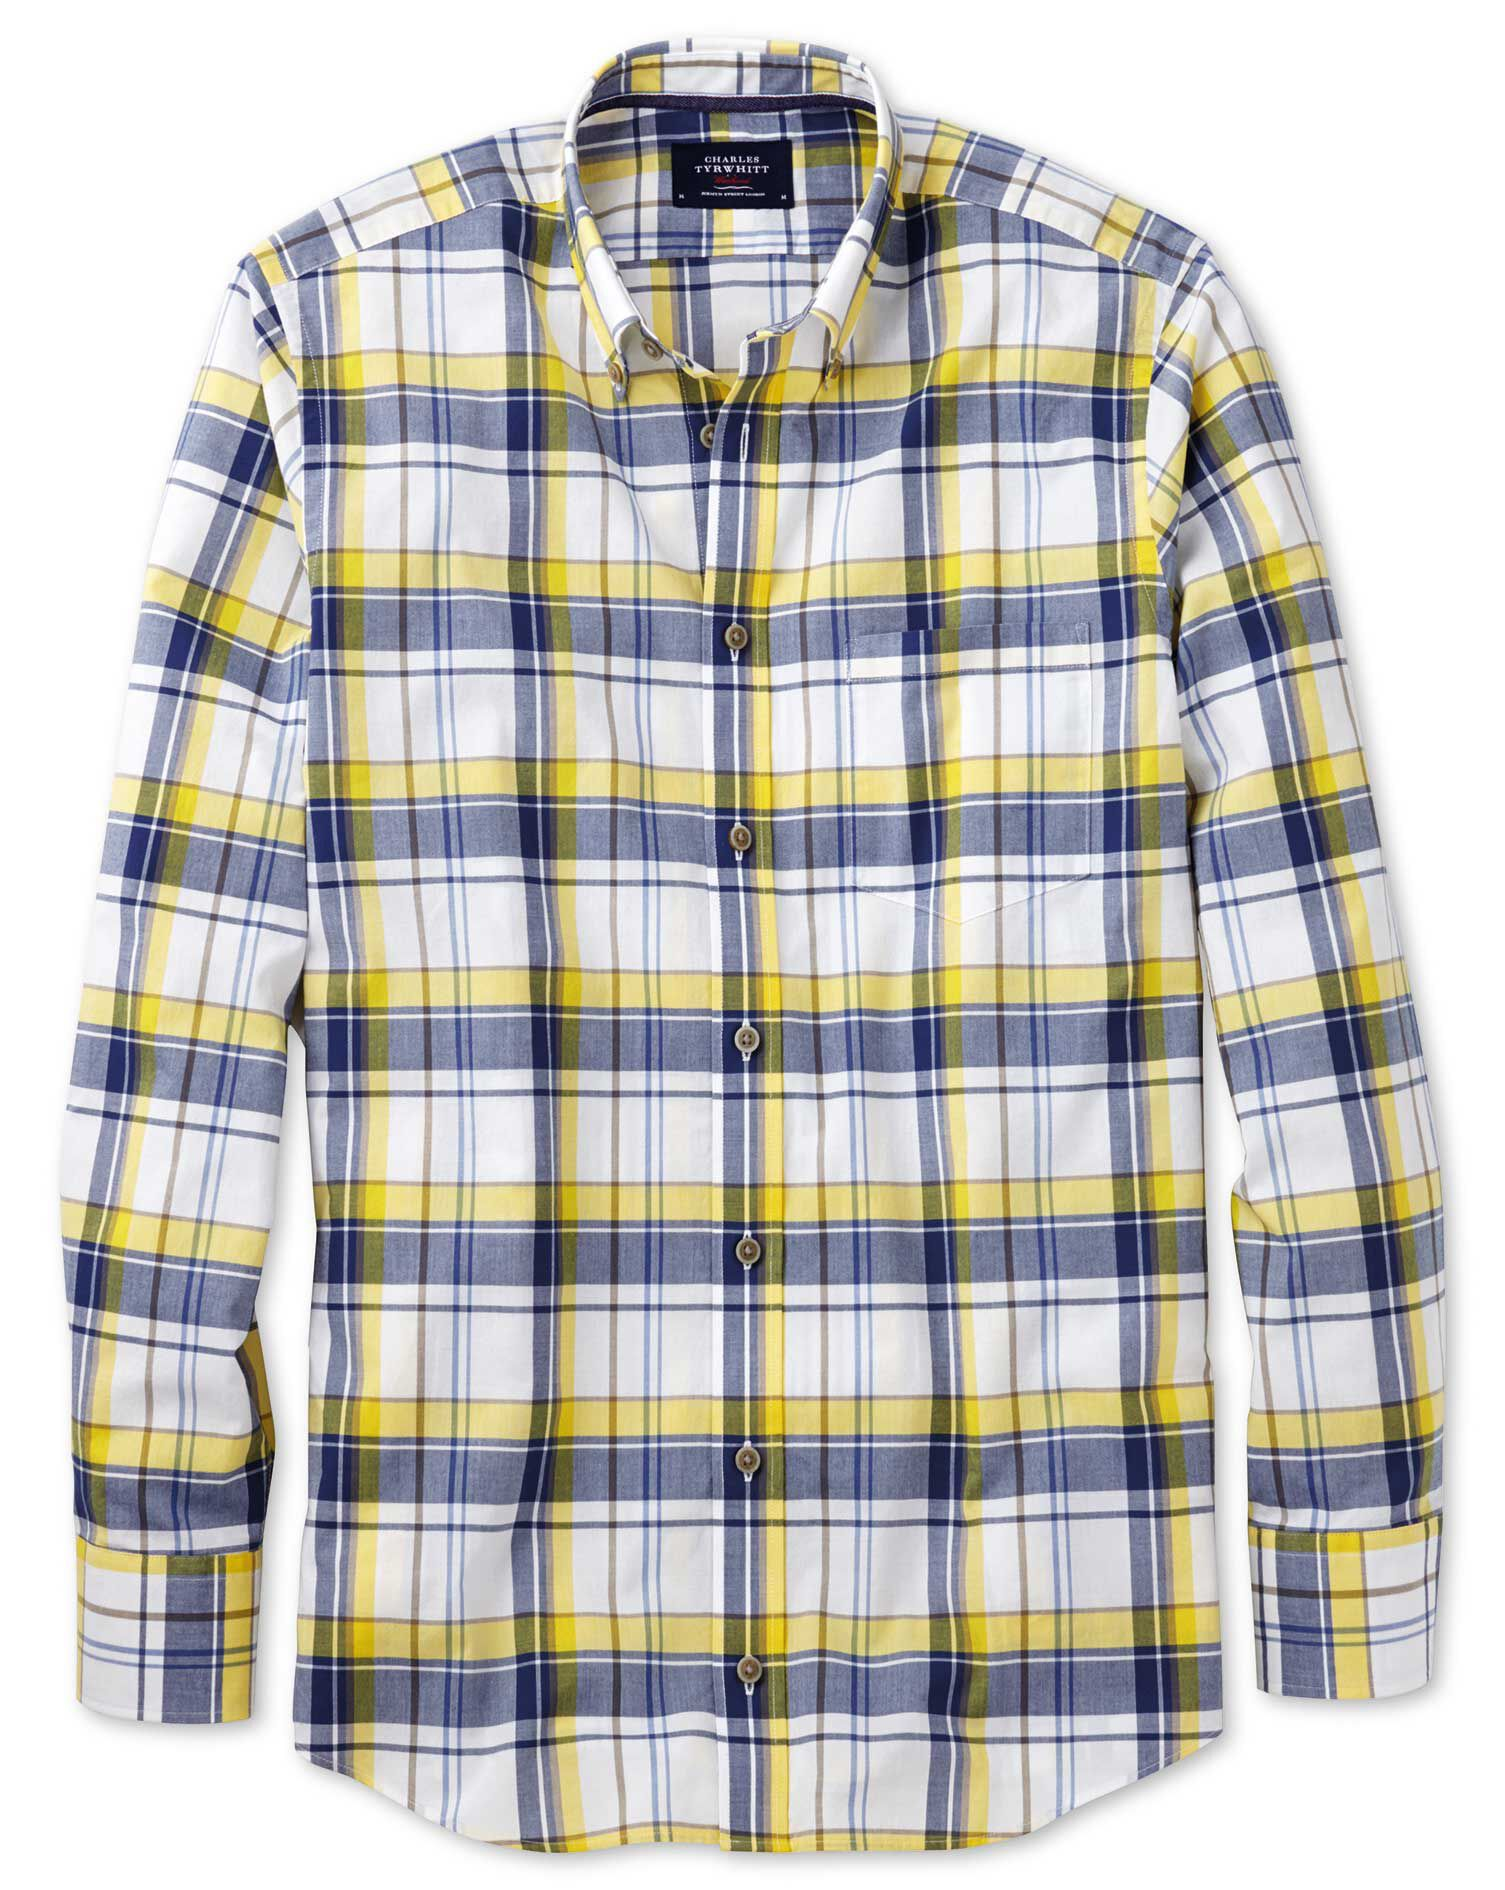 Classic Fit Button-Down Poplin Navy Blue and Yellow Check Cotton Shirt Single Cuff Size XXXL by Char